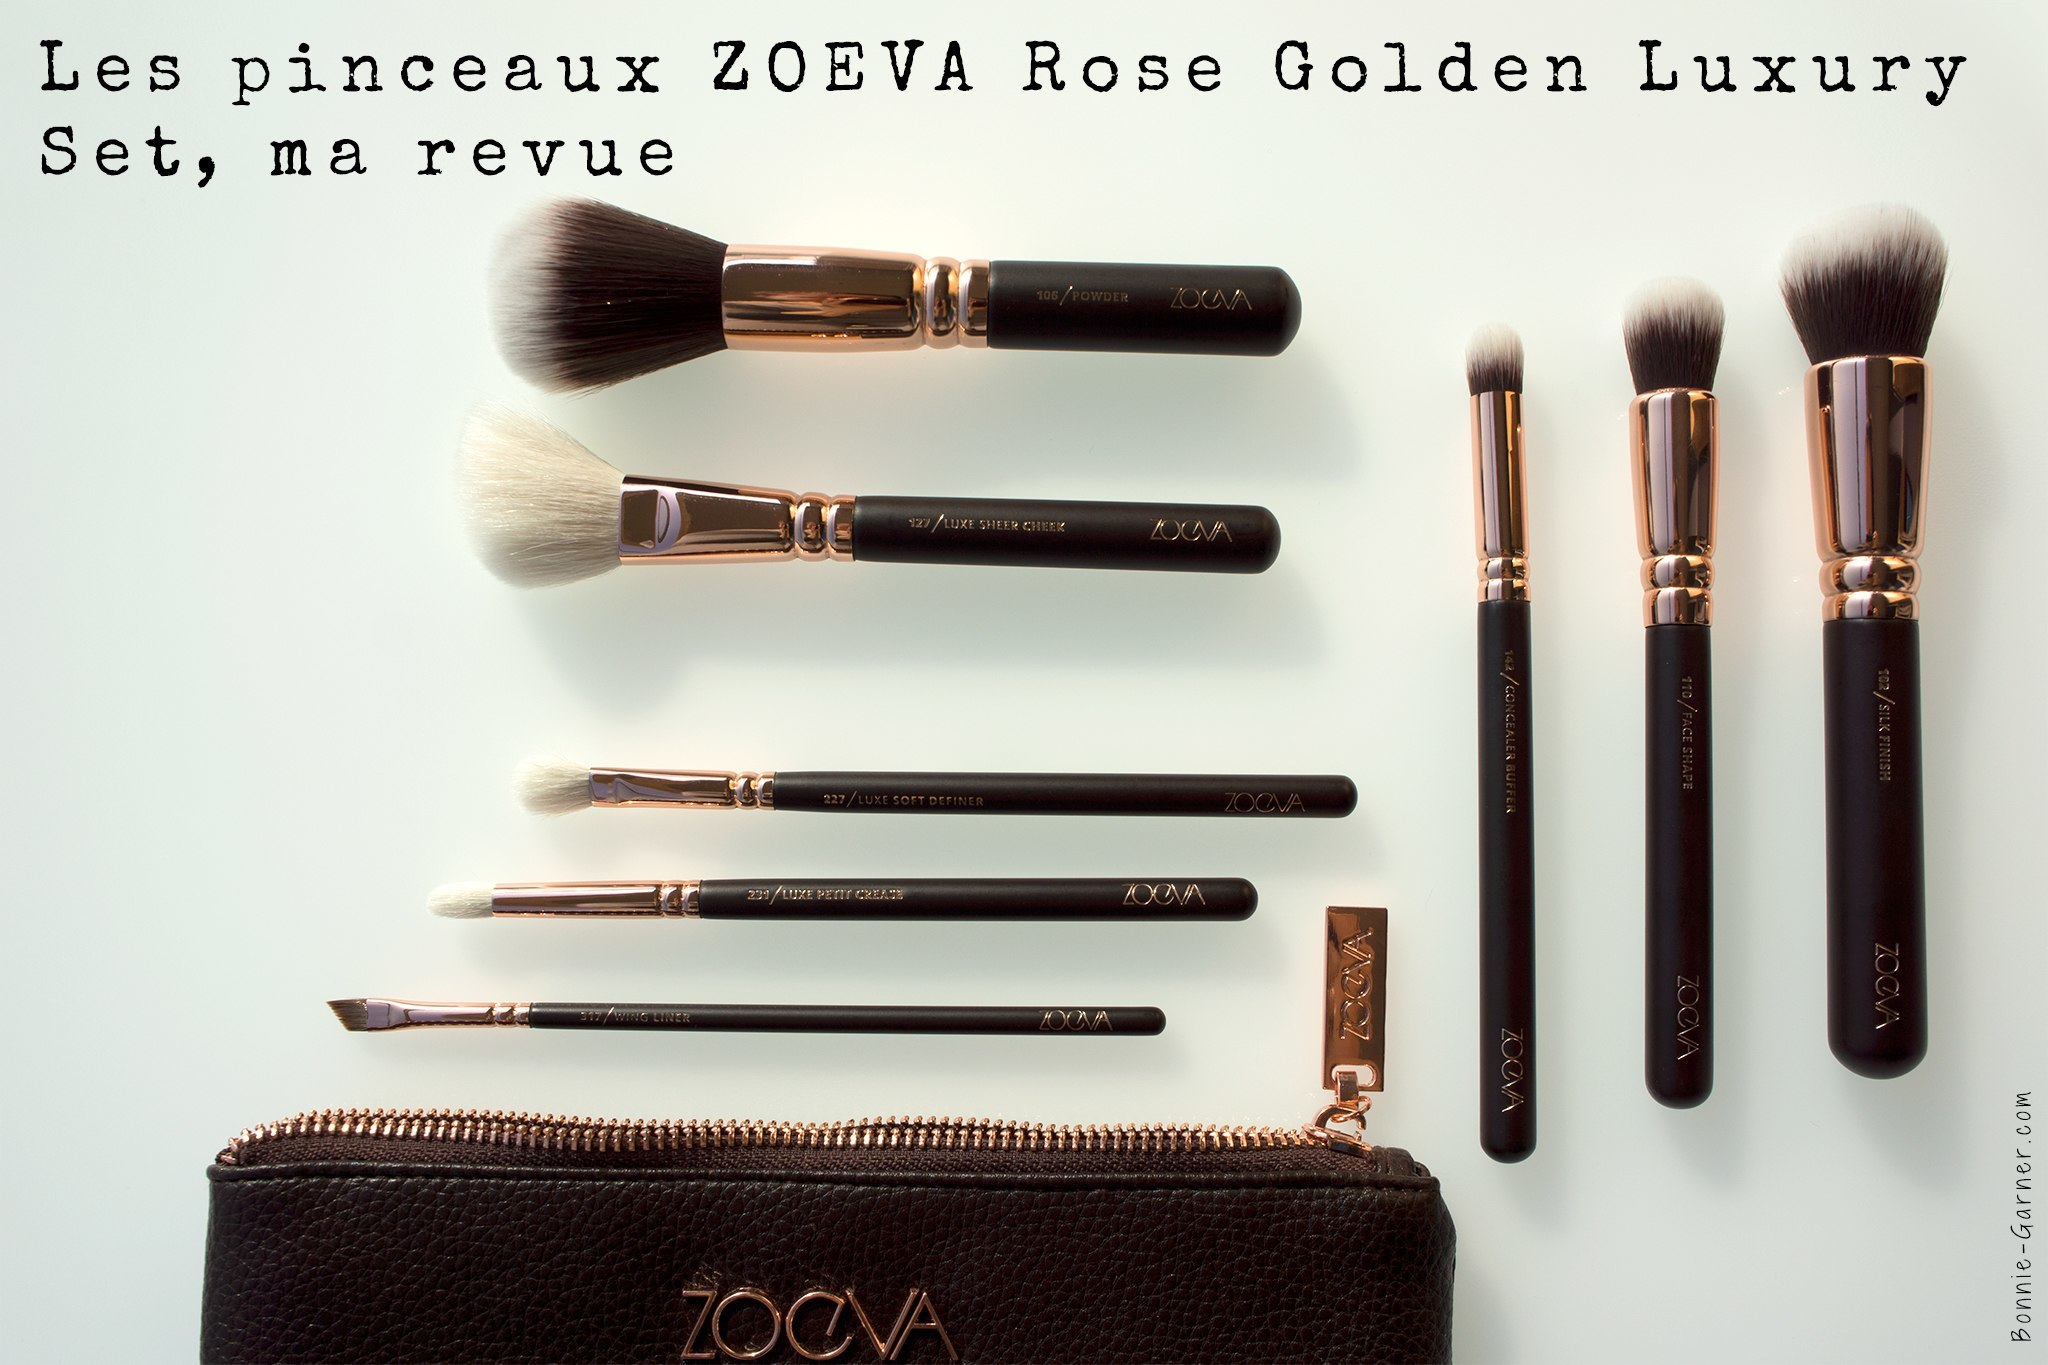 Les pinceaux ZOEVA Rose Golden Luxury Set, ma revue